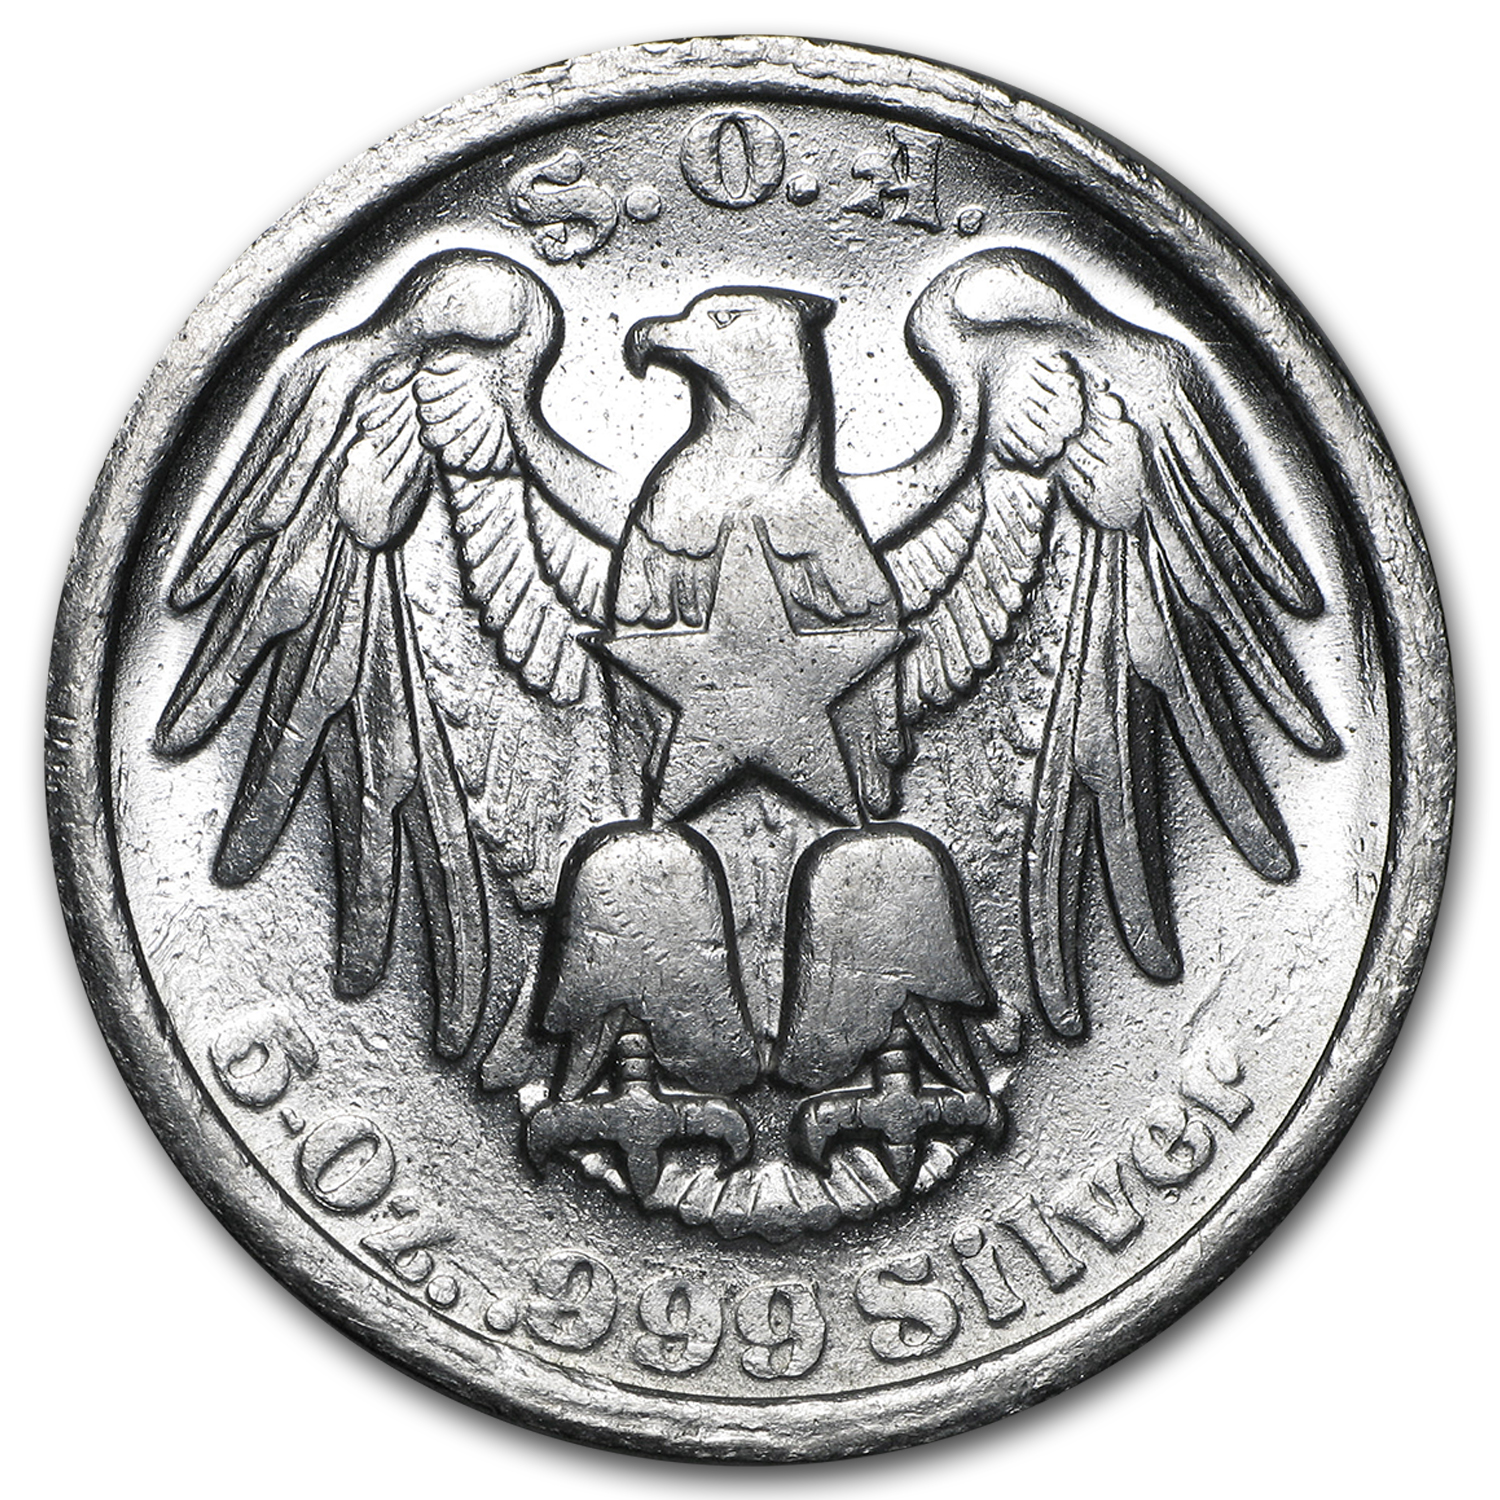 5 oz Silver Round - Swiss of America